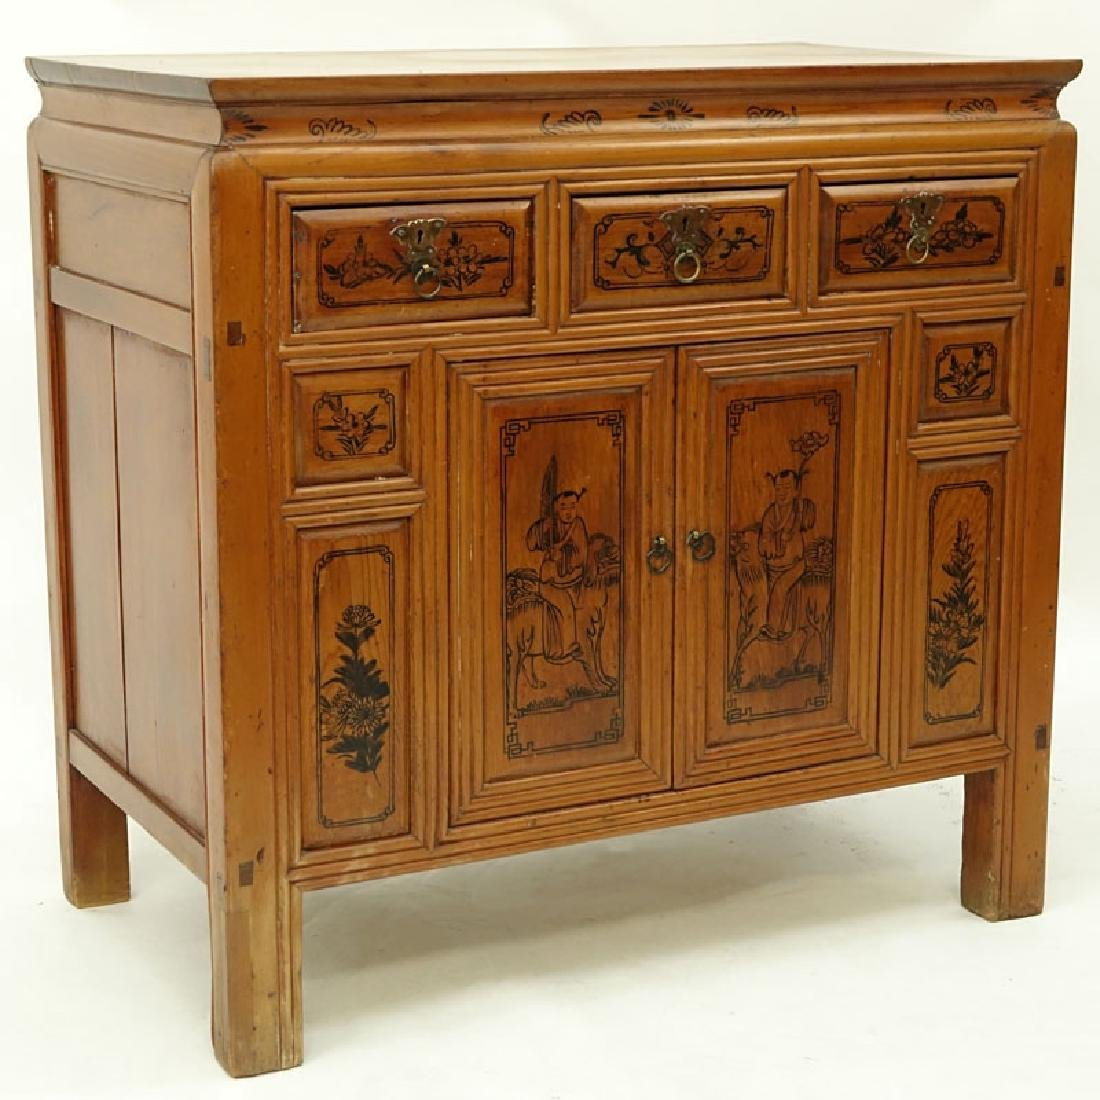 Circa 1900 Chinese Cypress Wood Cabinet with Three (3)